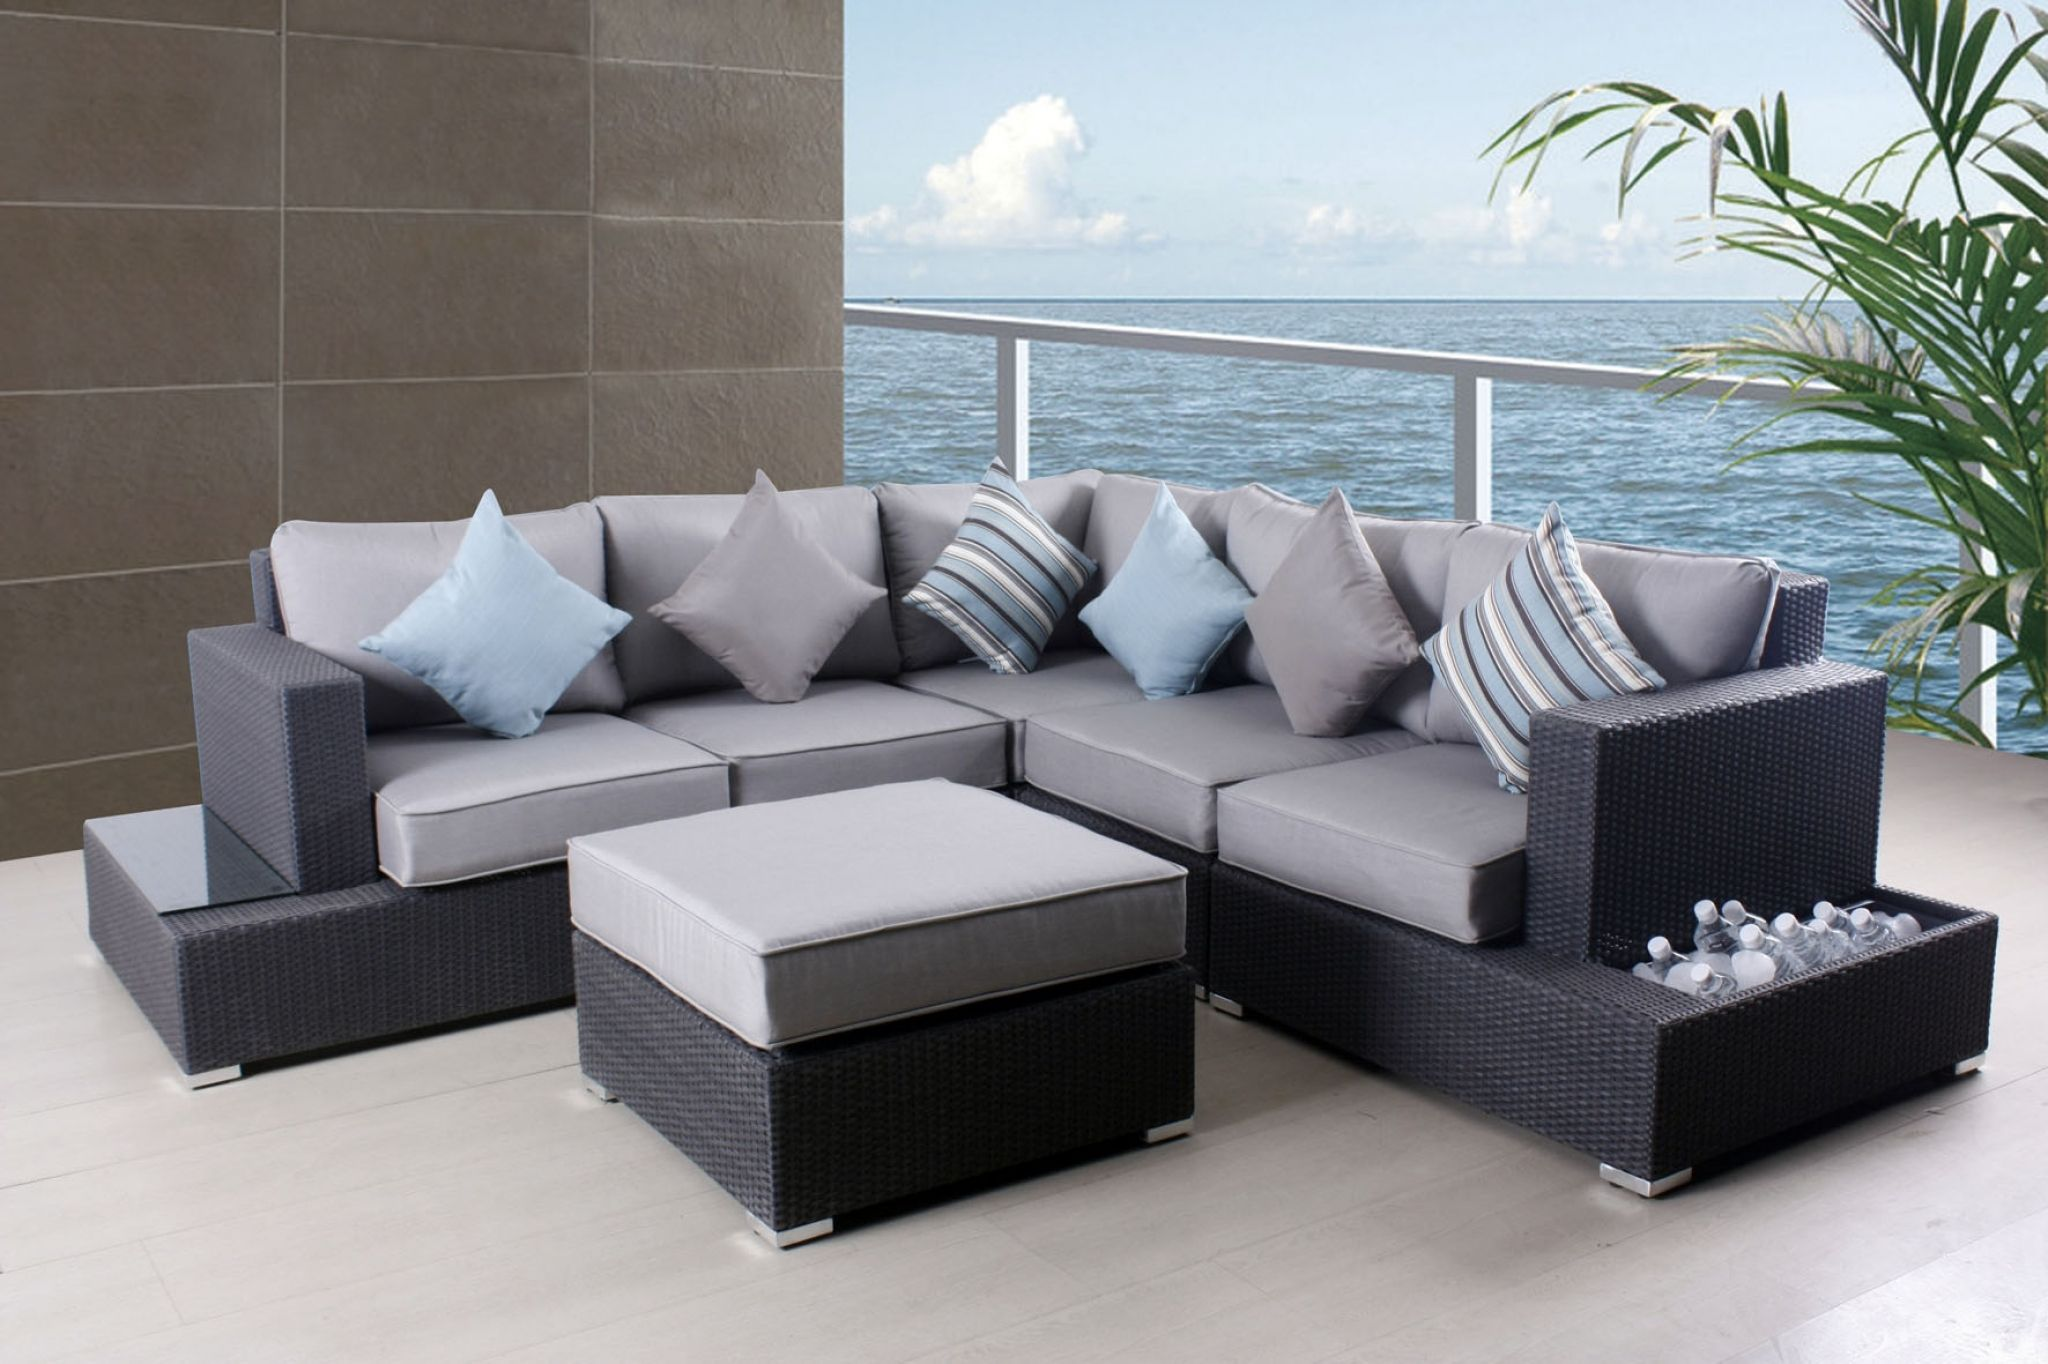 costco outdoor patio furniture most popular interior paint